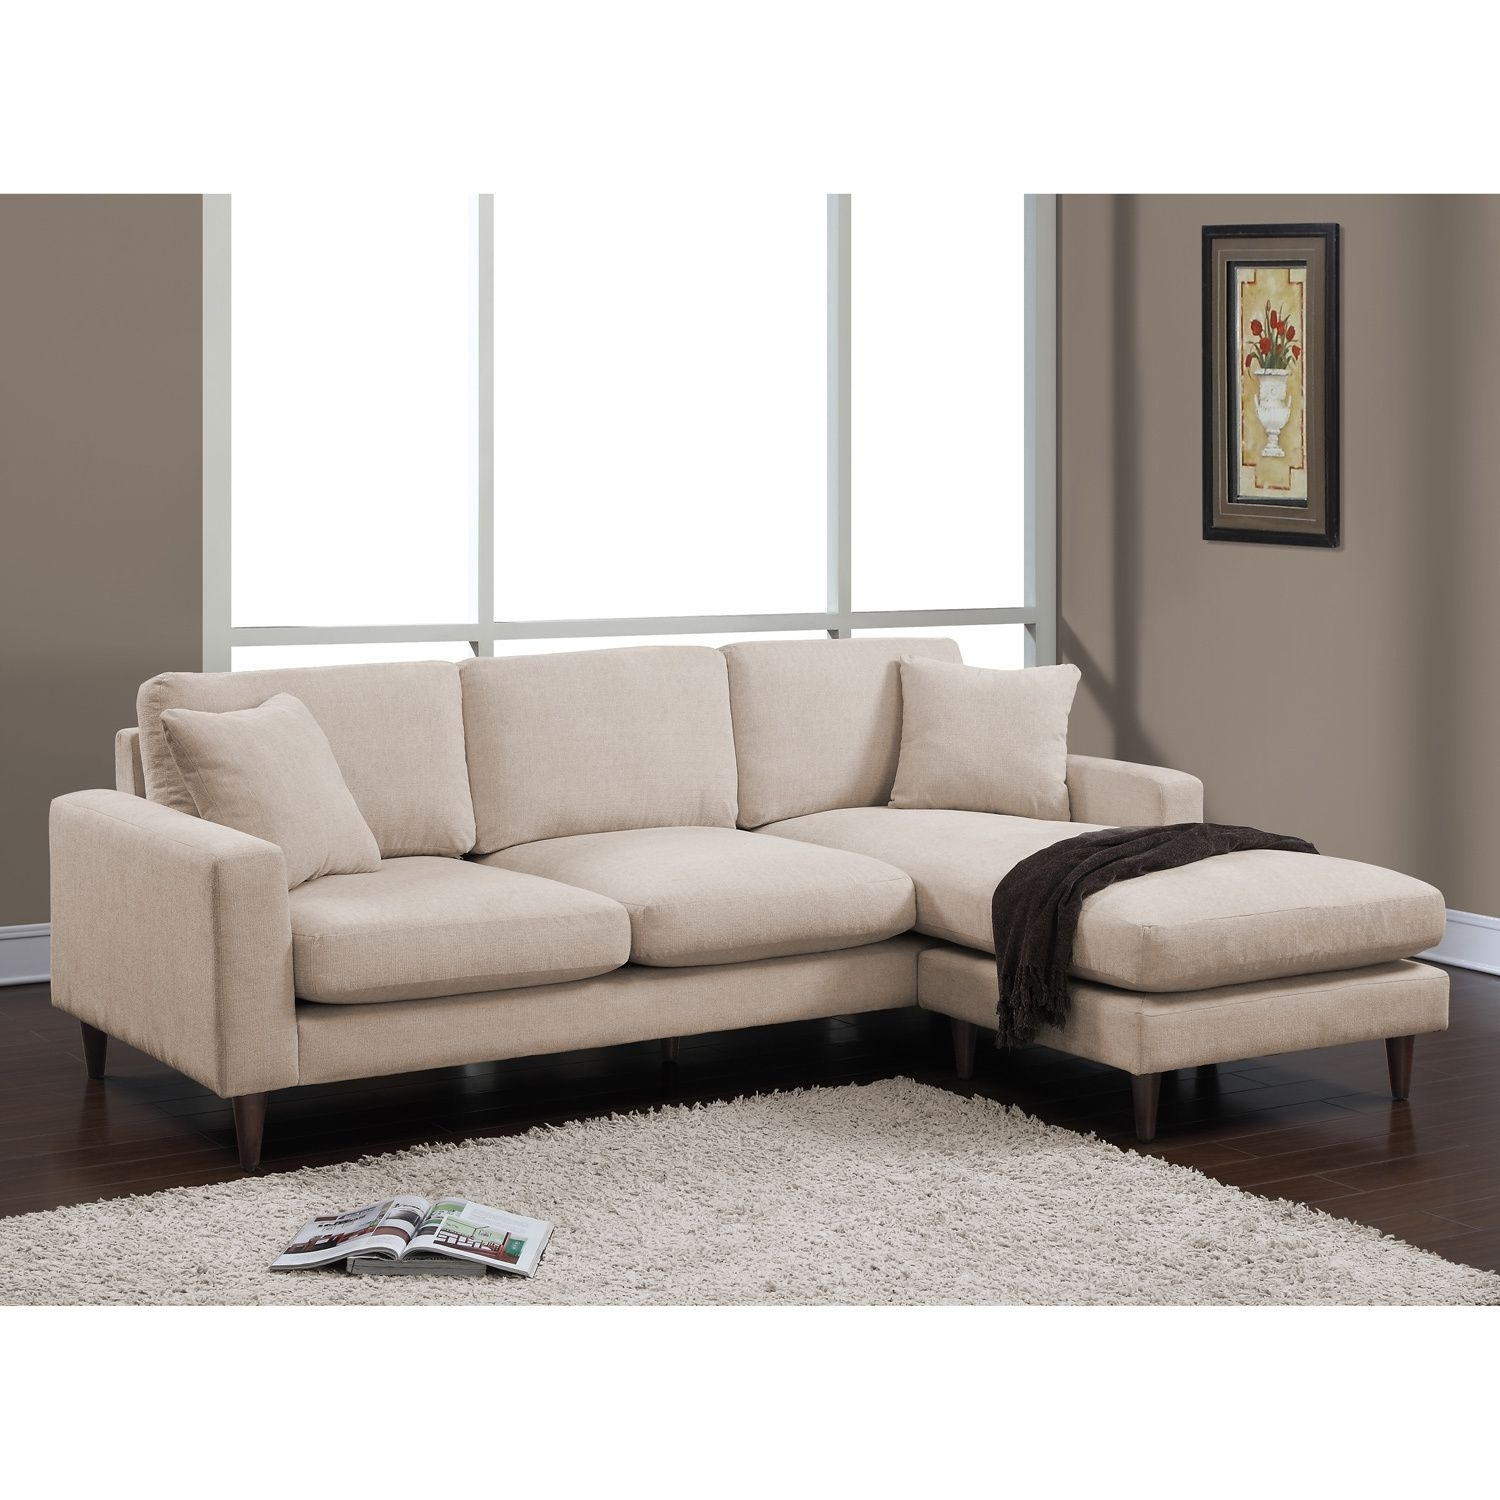 Lounge In Total Comfort With The Shaffer Two Piece Sectional Made Intended For Kingston Ontario Sectional Sofas (View 10 of 10)